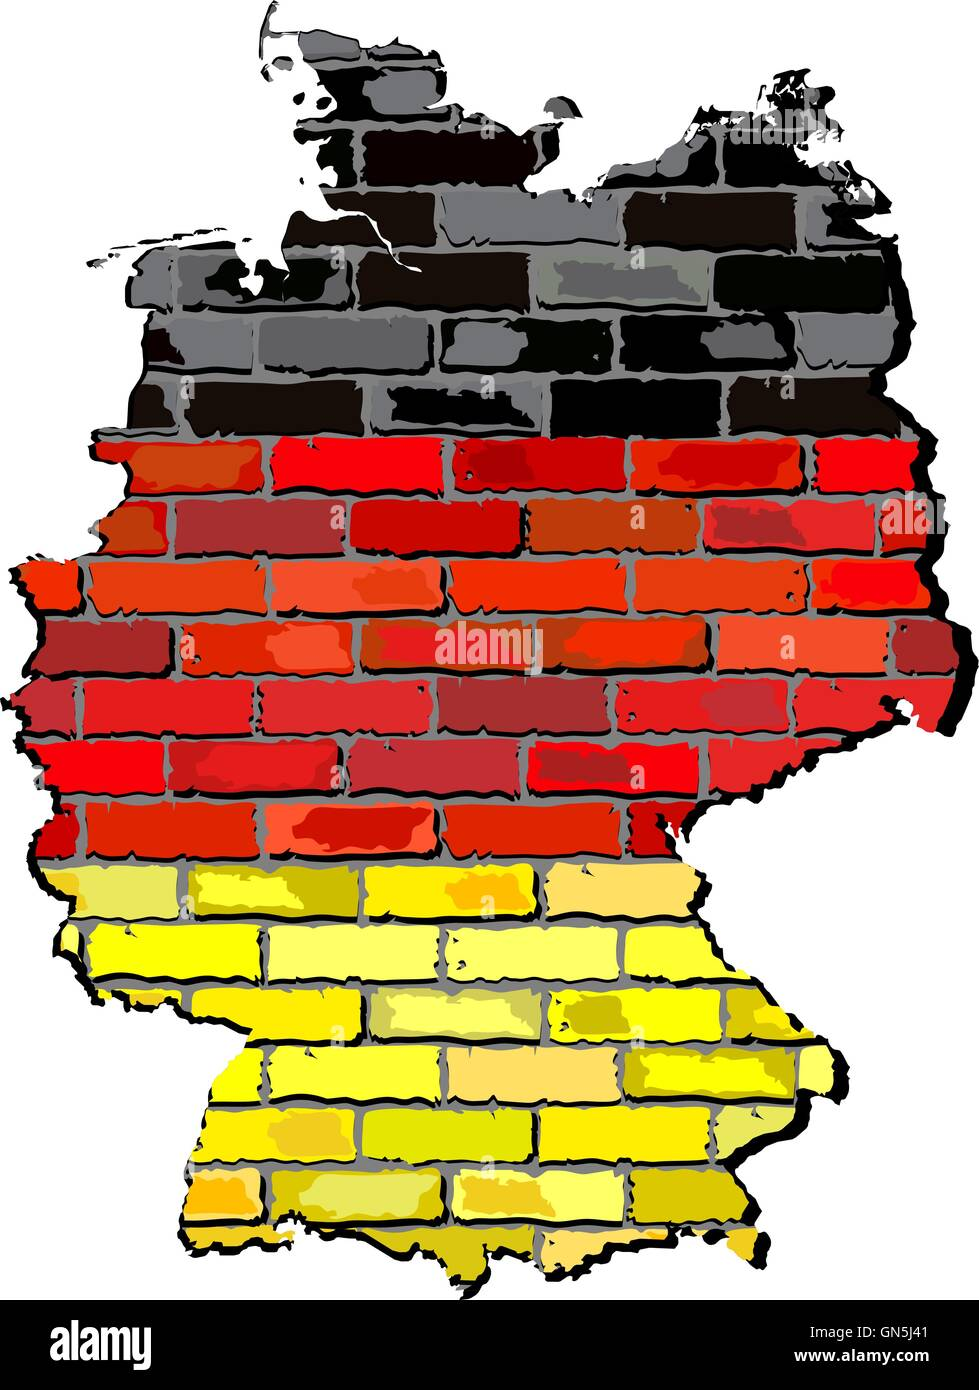 Germany map on a brick wall - Stock Vector